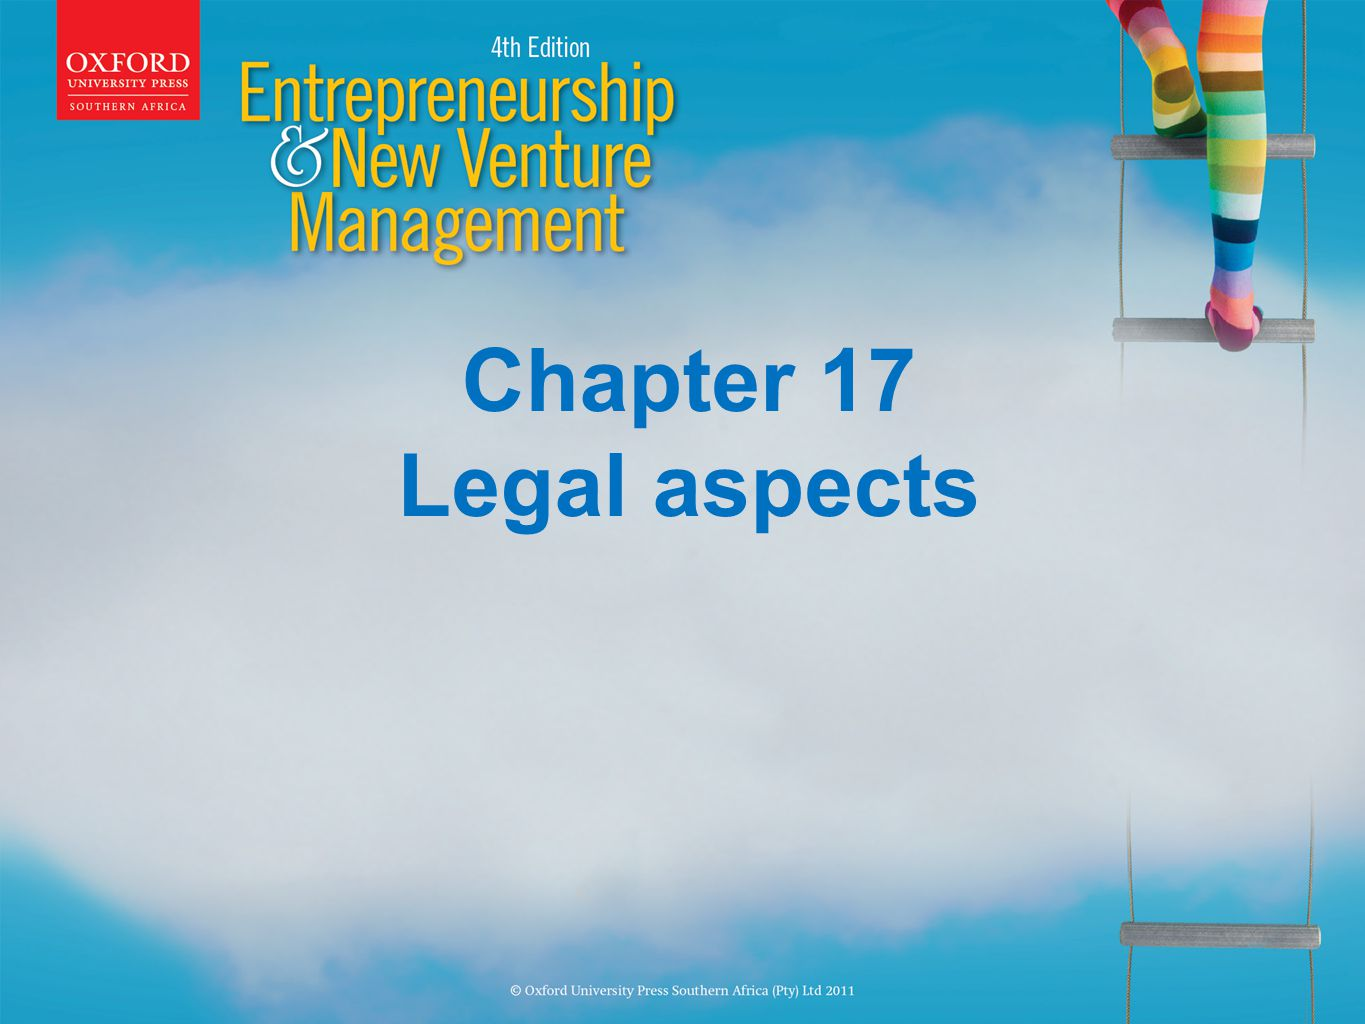 Chapter 17 Legal aspects